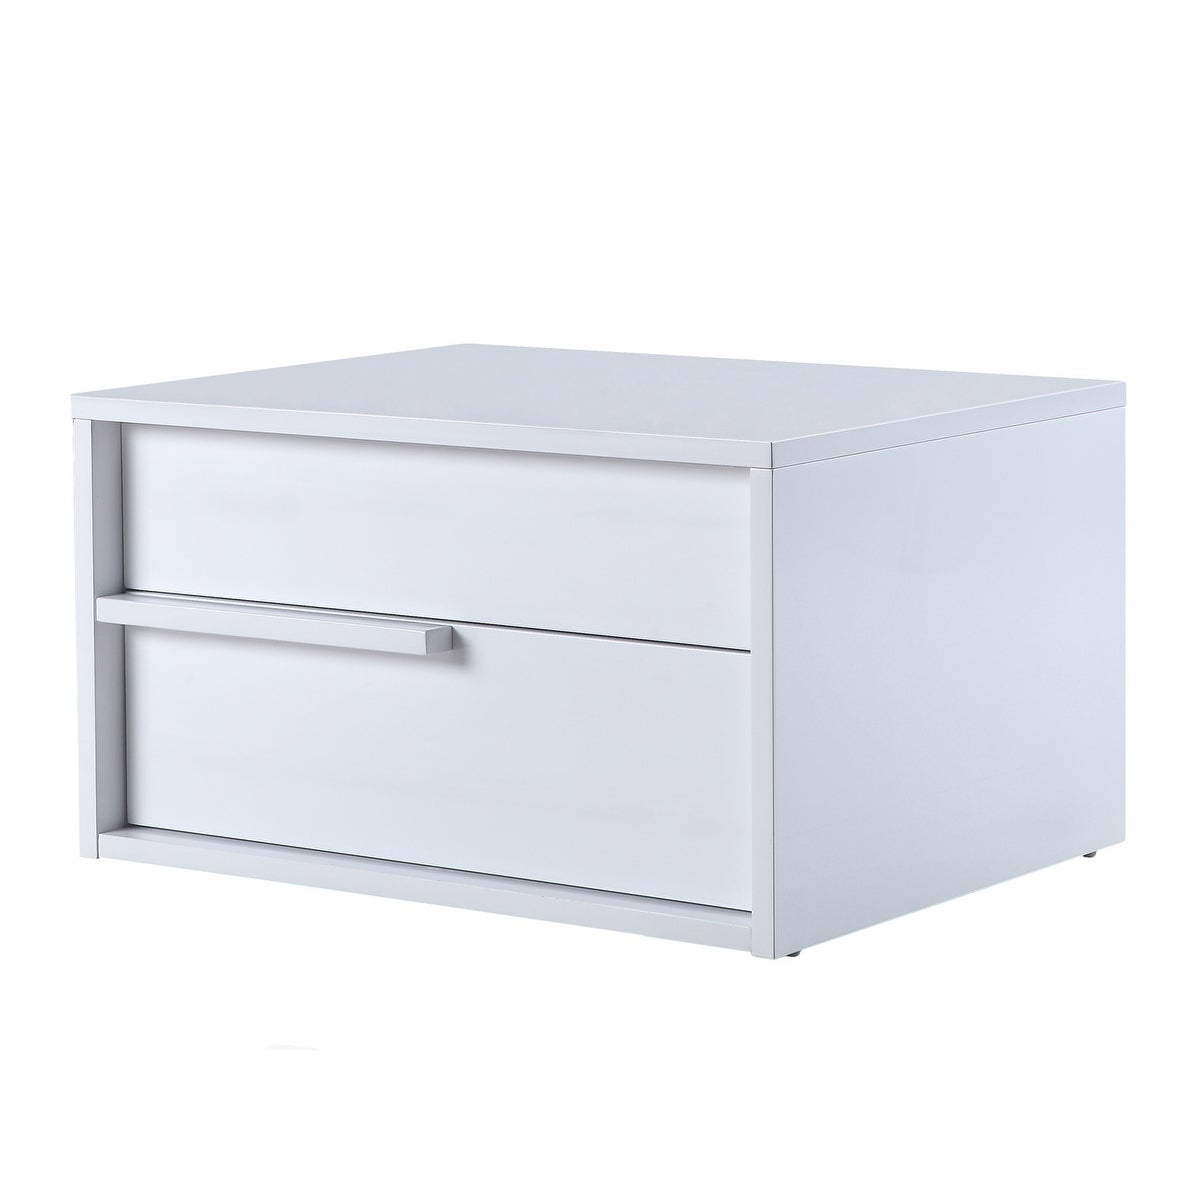 Casablanca Home Dolce High Gloss White Lacquer/Wood Left ...